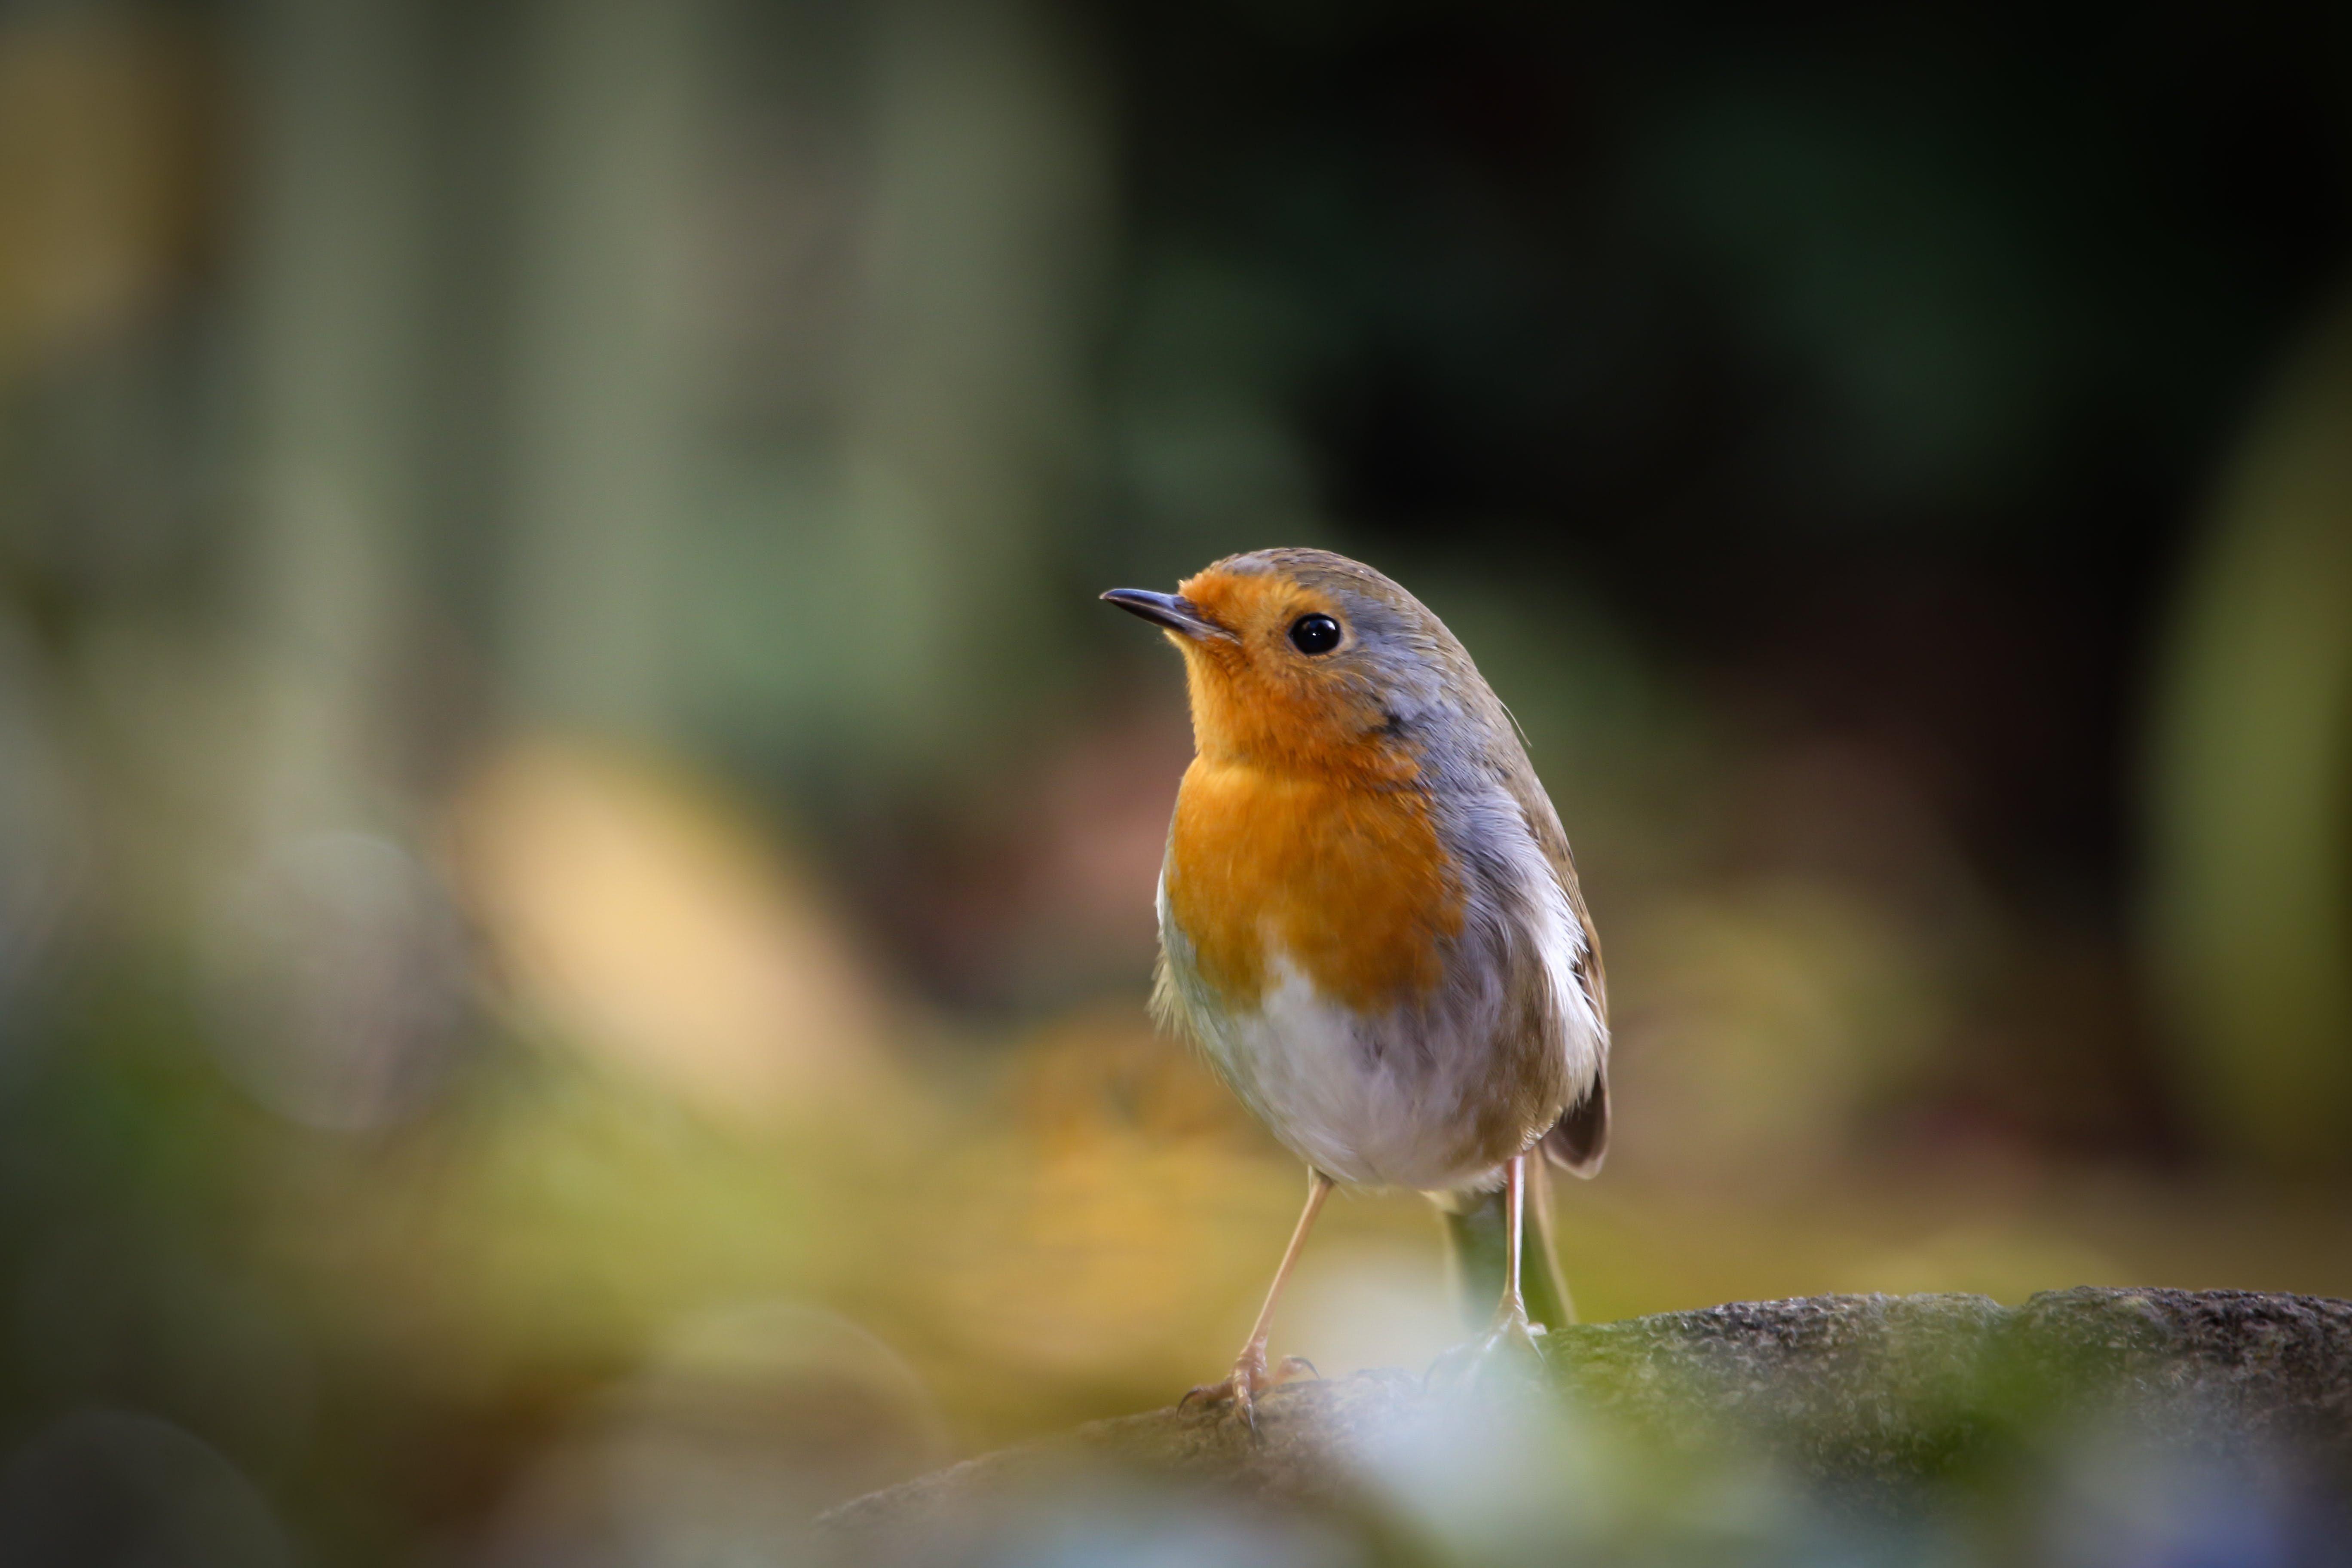 Selective Focus Photography of Yellow, White, and Brown Bird